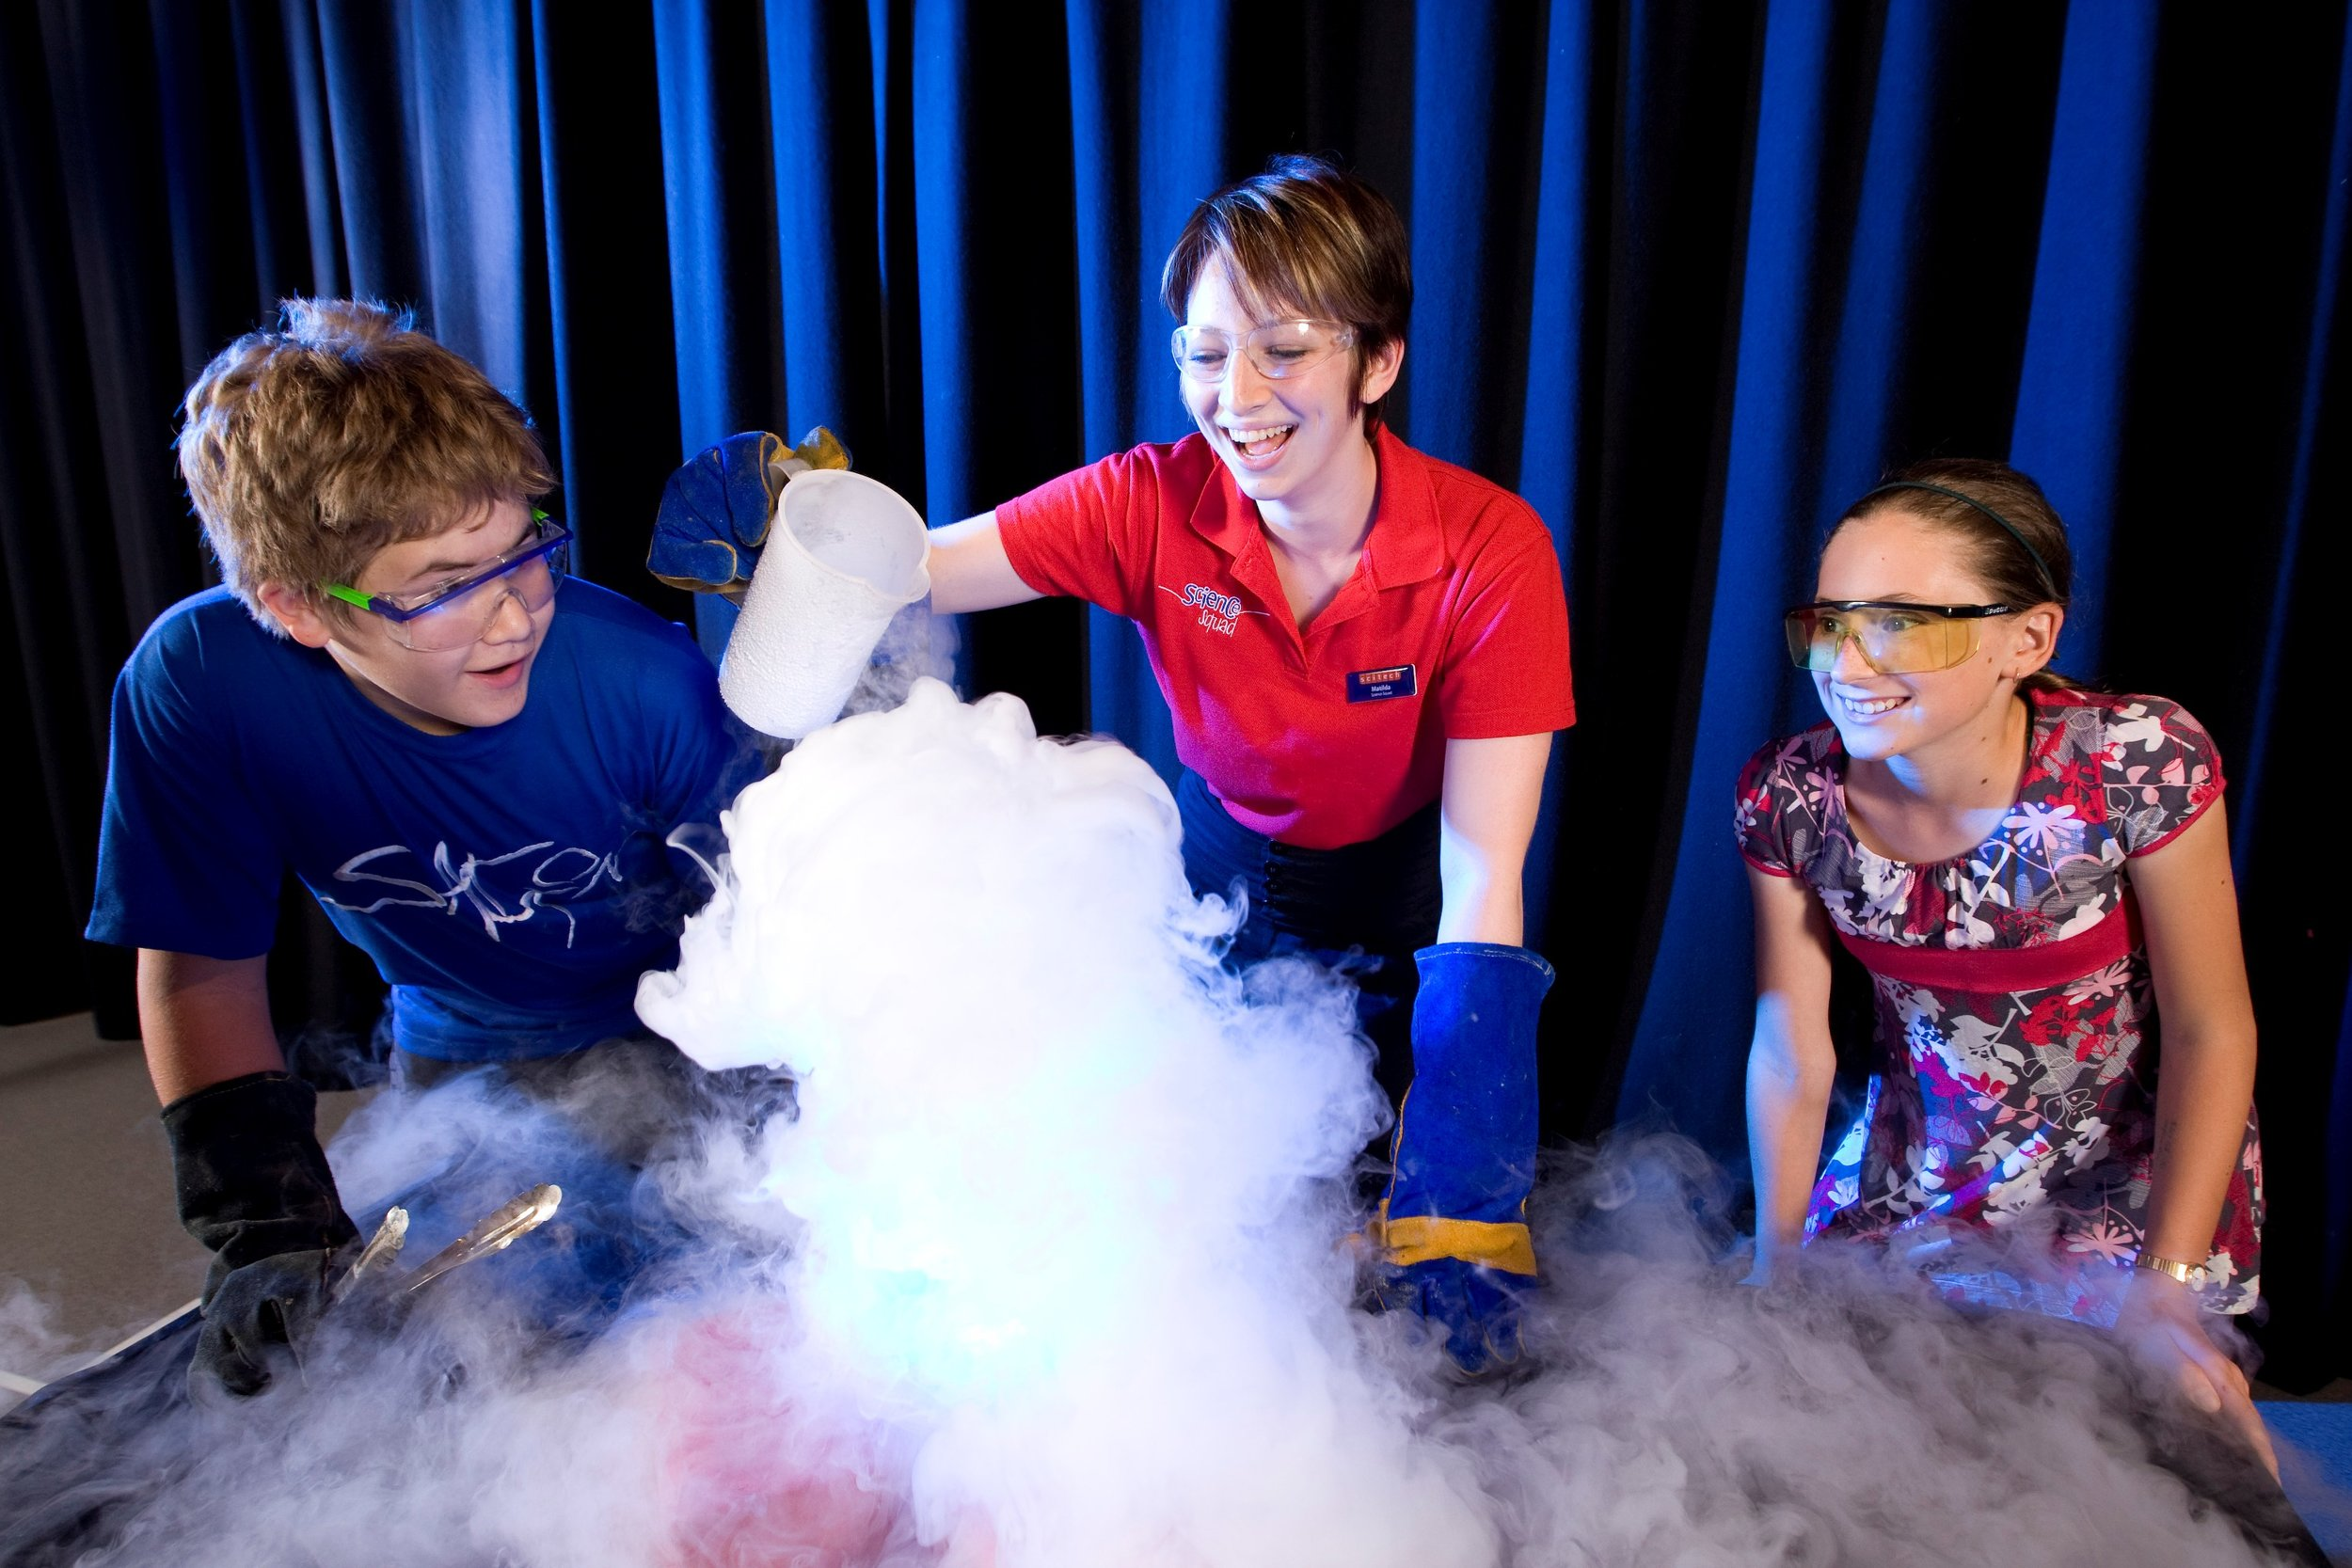 Scitech in Perth isn't just for a rainy day!